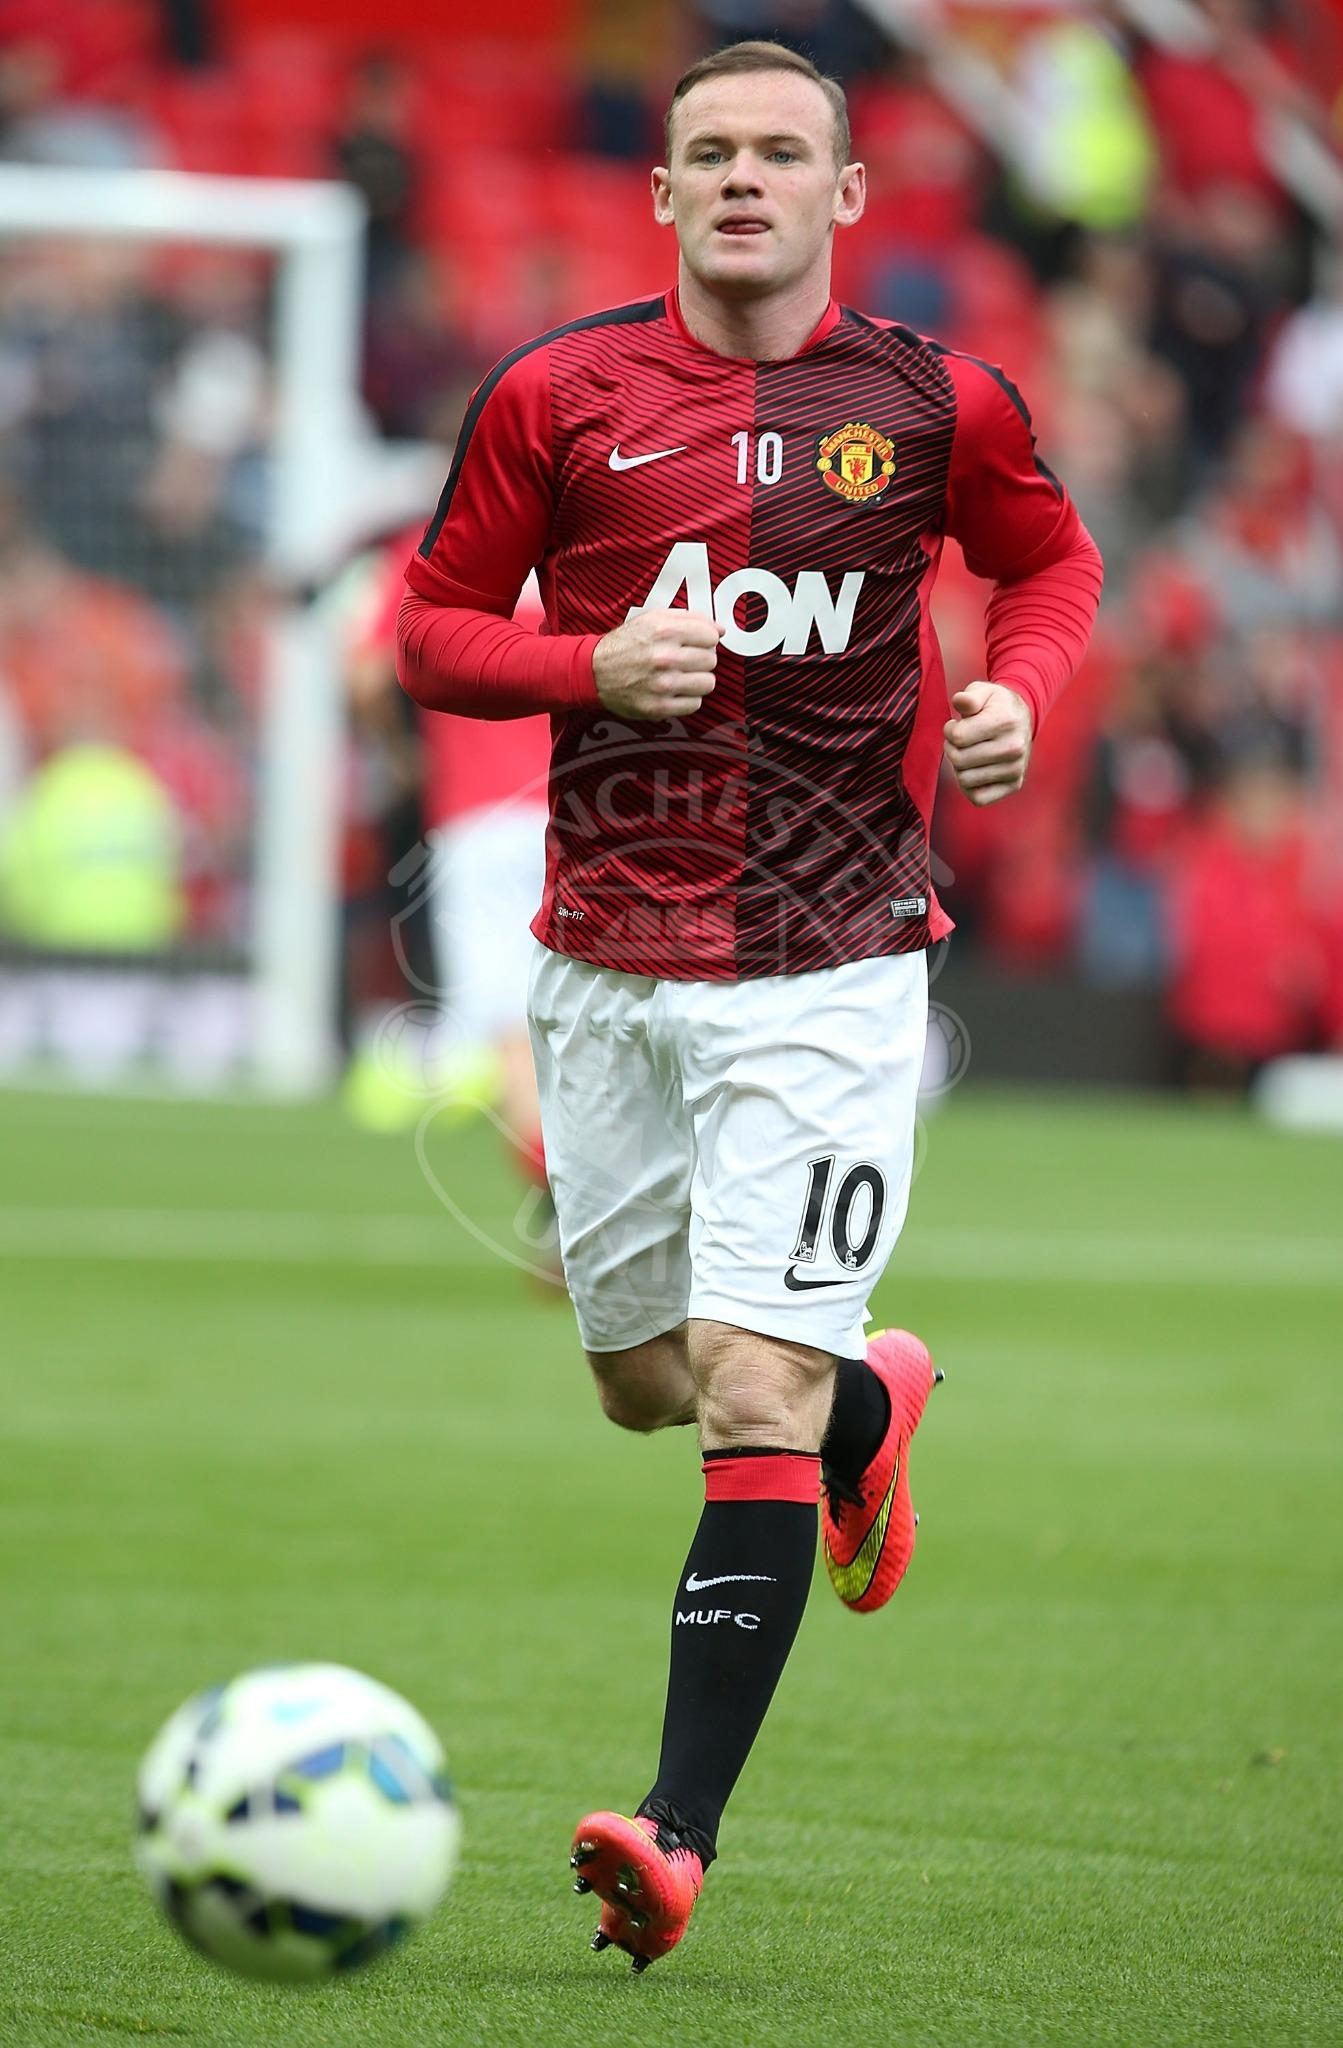 PIC: Wayne Rooney and the rest of the United players have been on the pitch warming up ahead of kick-off. #MUFClive http://t.co/mLe8FTg0GL